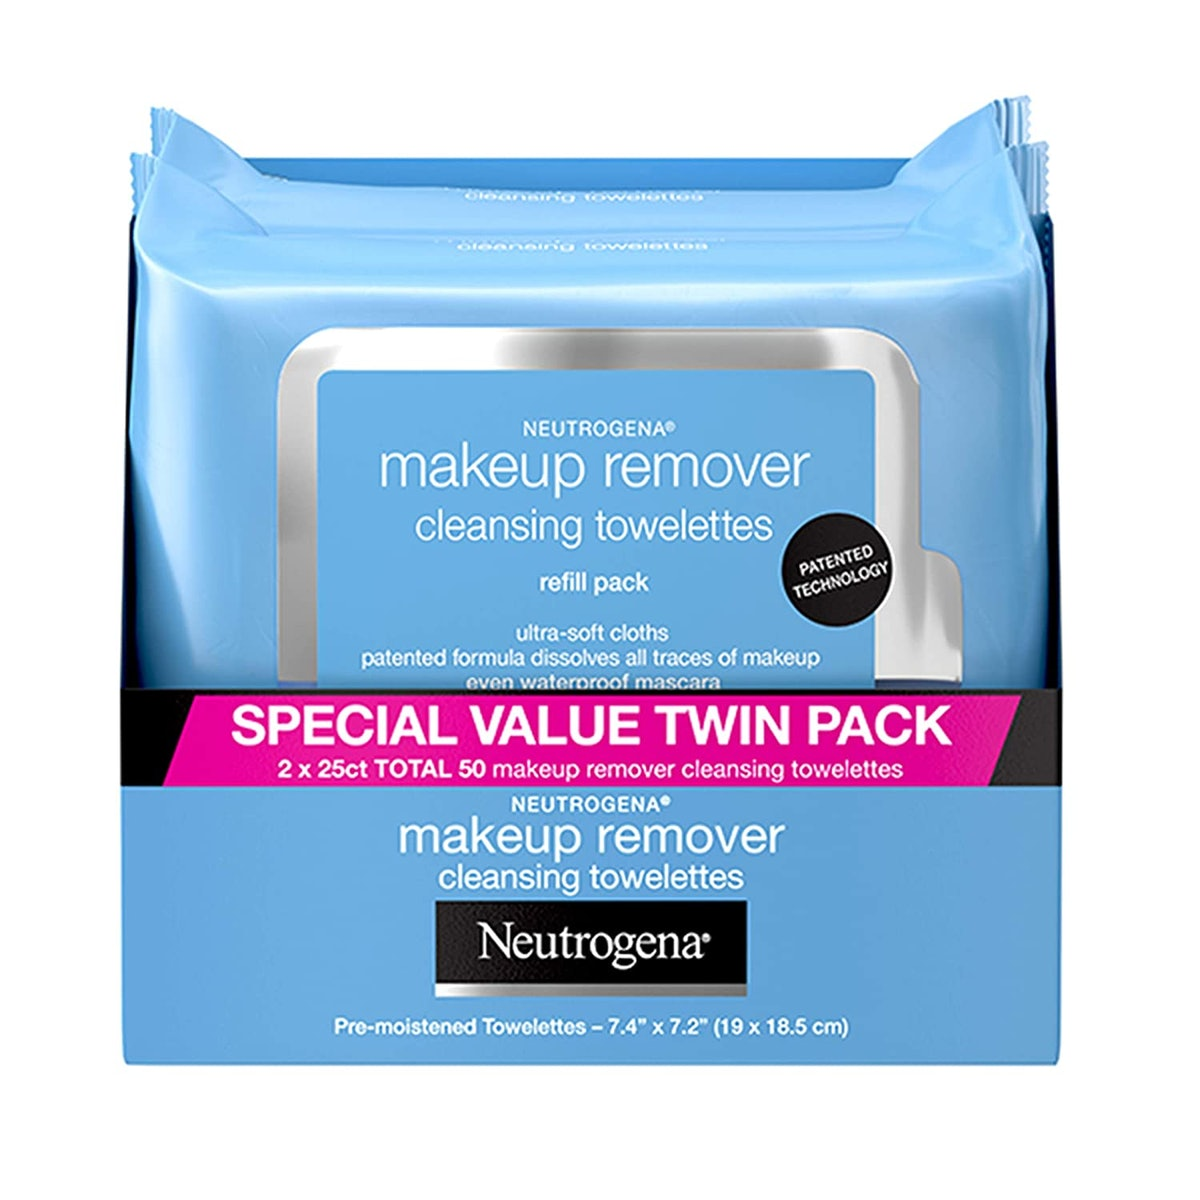 Neutrogena Makeup Remover Cleansing Towelettes  (2-Pack)